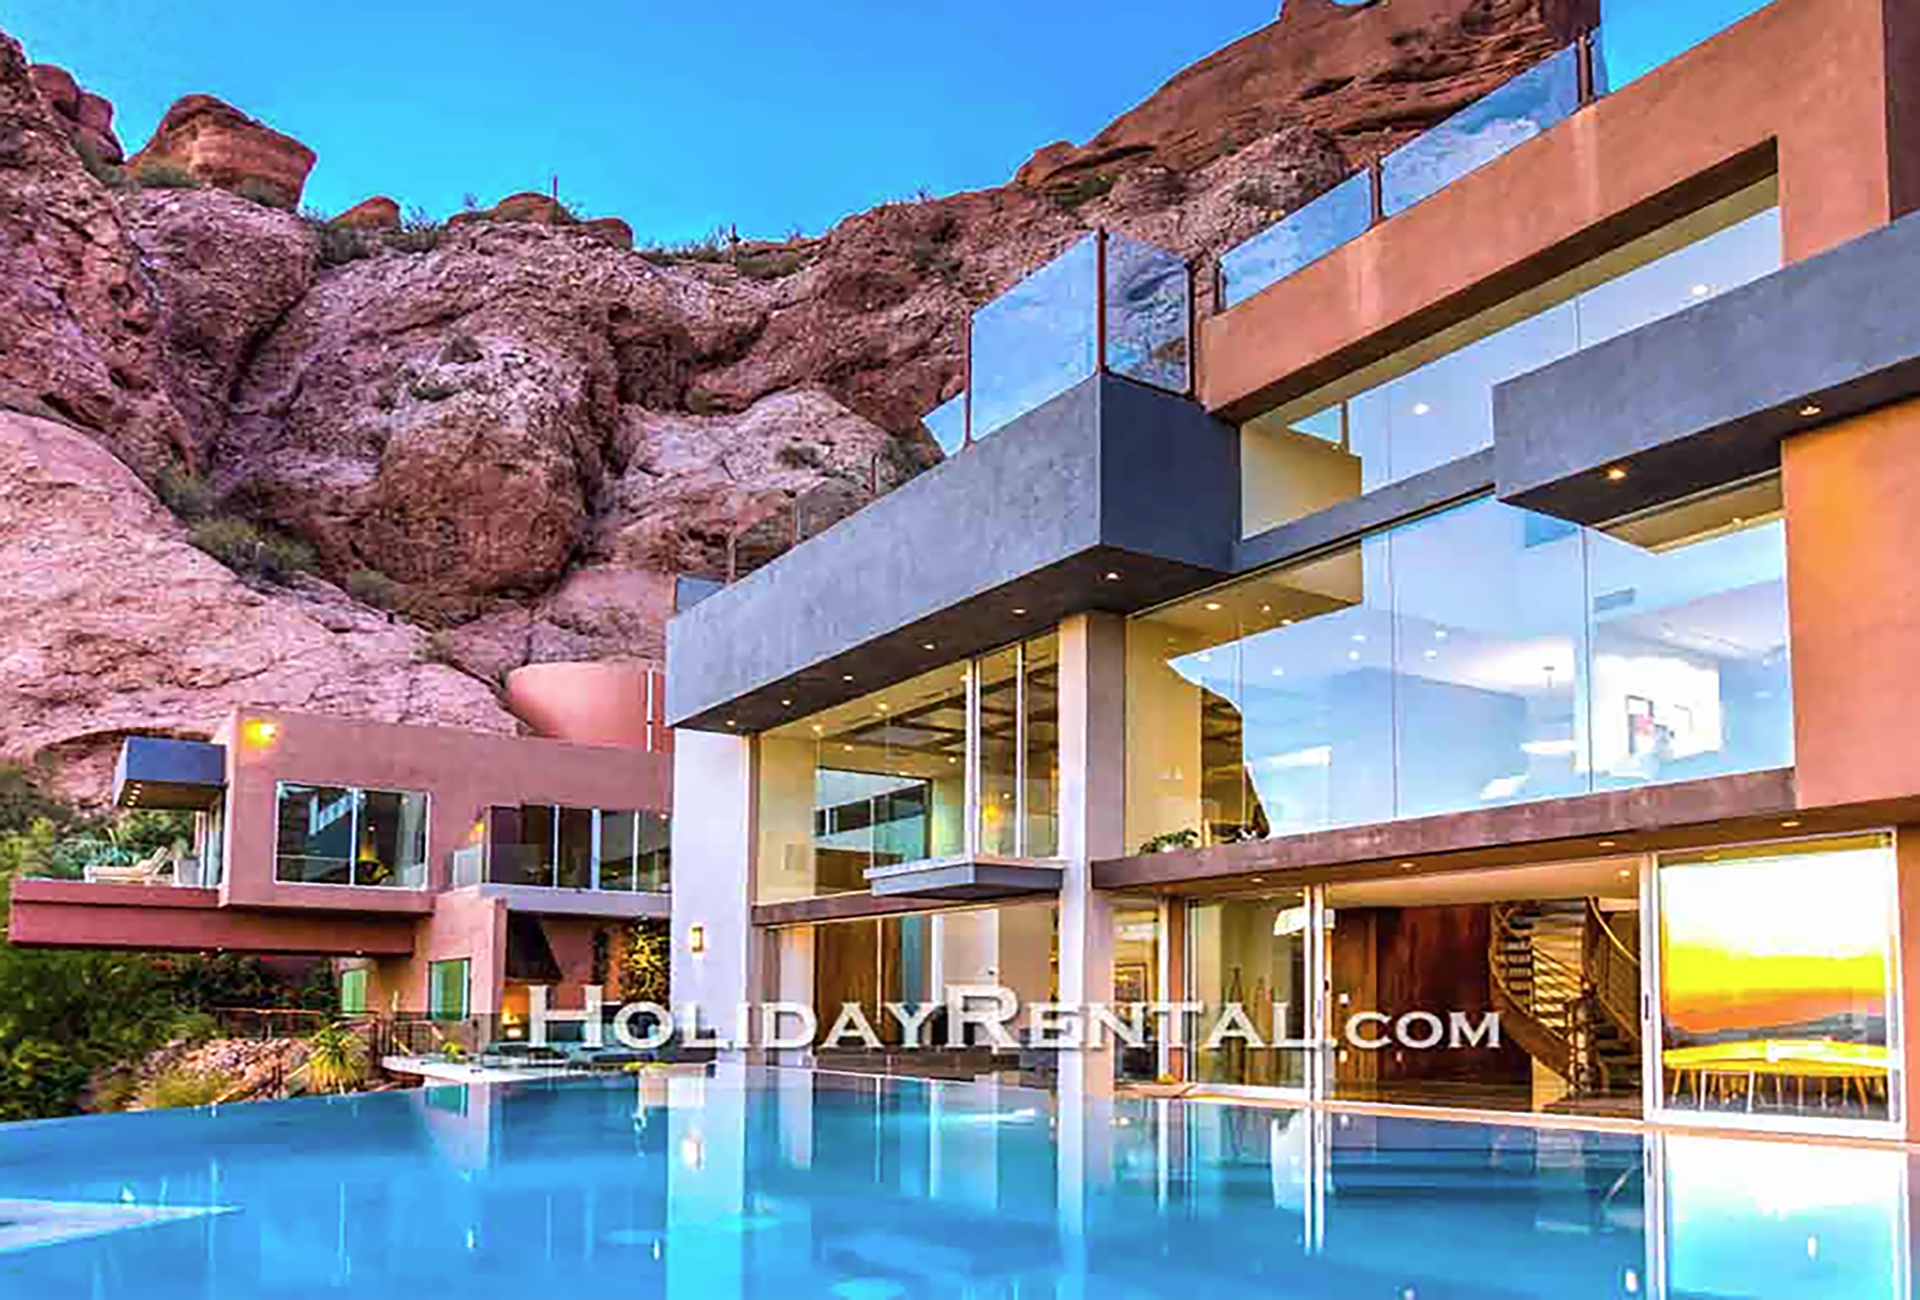 Best Vacation rental in Scottsdale - STAY ON TOP! Luxury